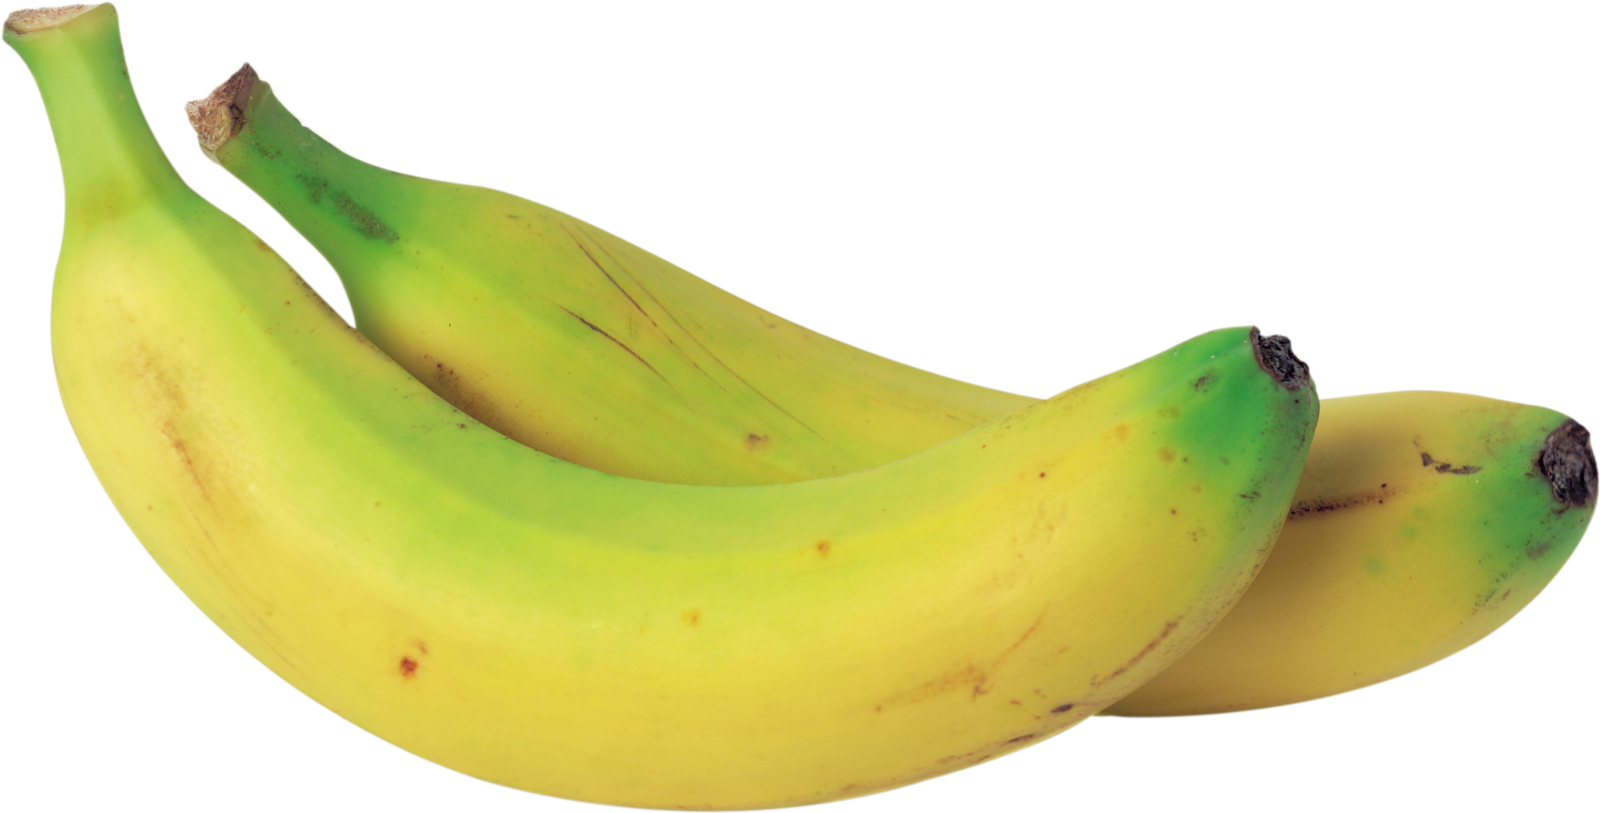 So If You Take Banana Everyday Your Infection Would Reduce And It Would  Slowly Help You To Get Rid Of Diarrheapletely